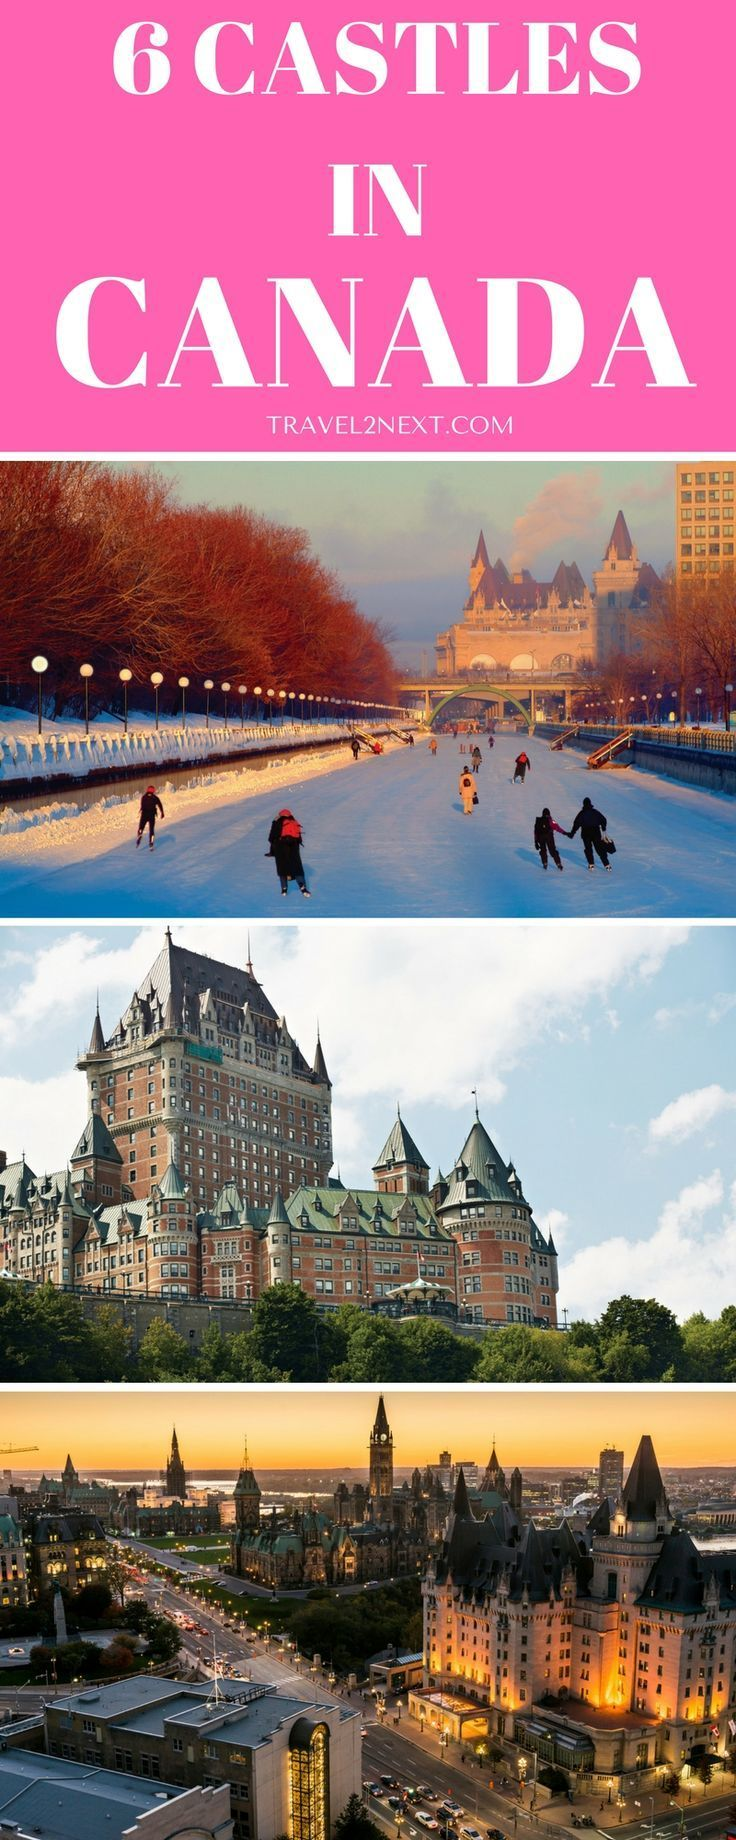 Canadian castles and forts. Across Canada theres a collection of glorious turrets and intricate stonework from some of the most impressive Canadian castles and forts.